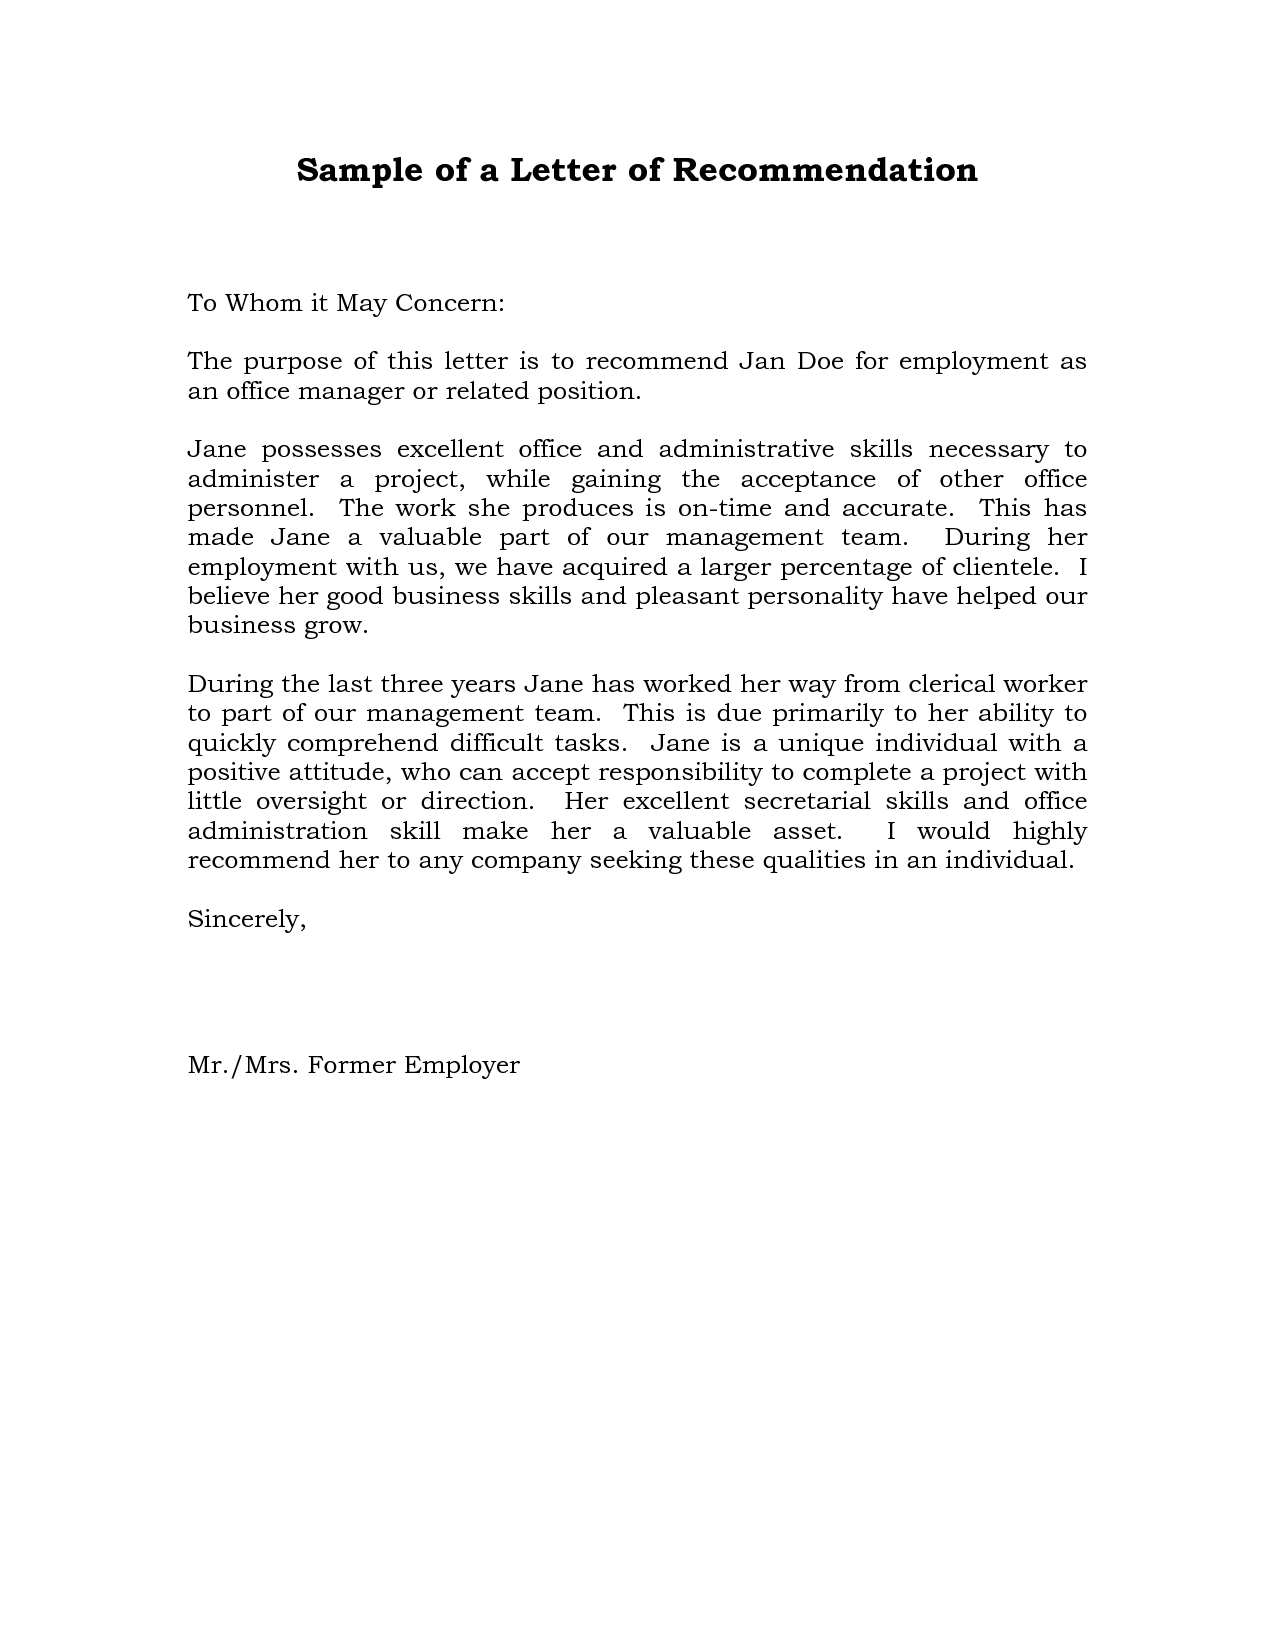 Reference Letter of Recommendation Sample – Job Reference Letter Template